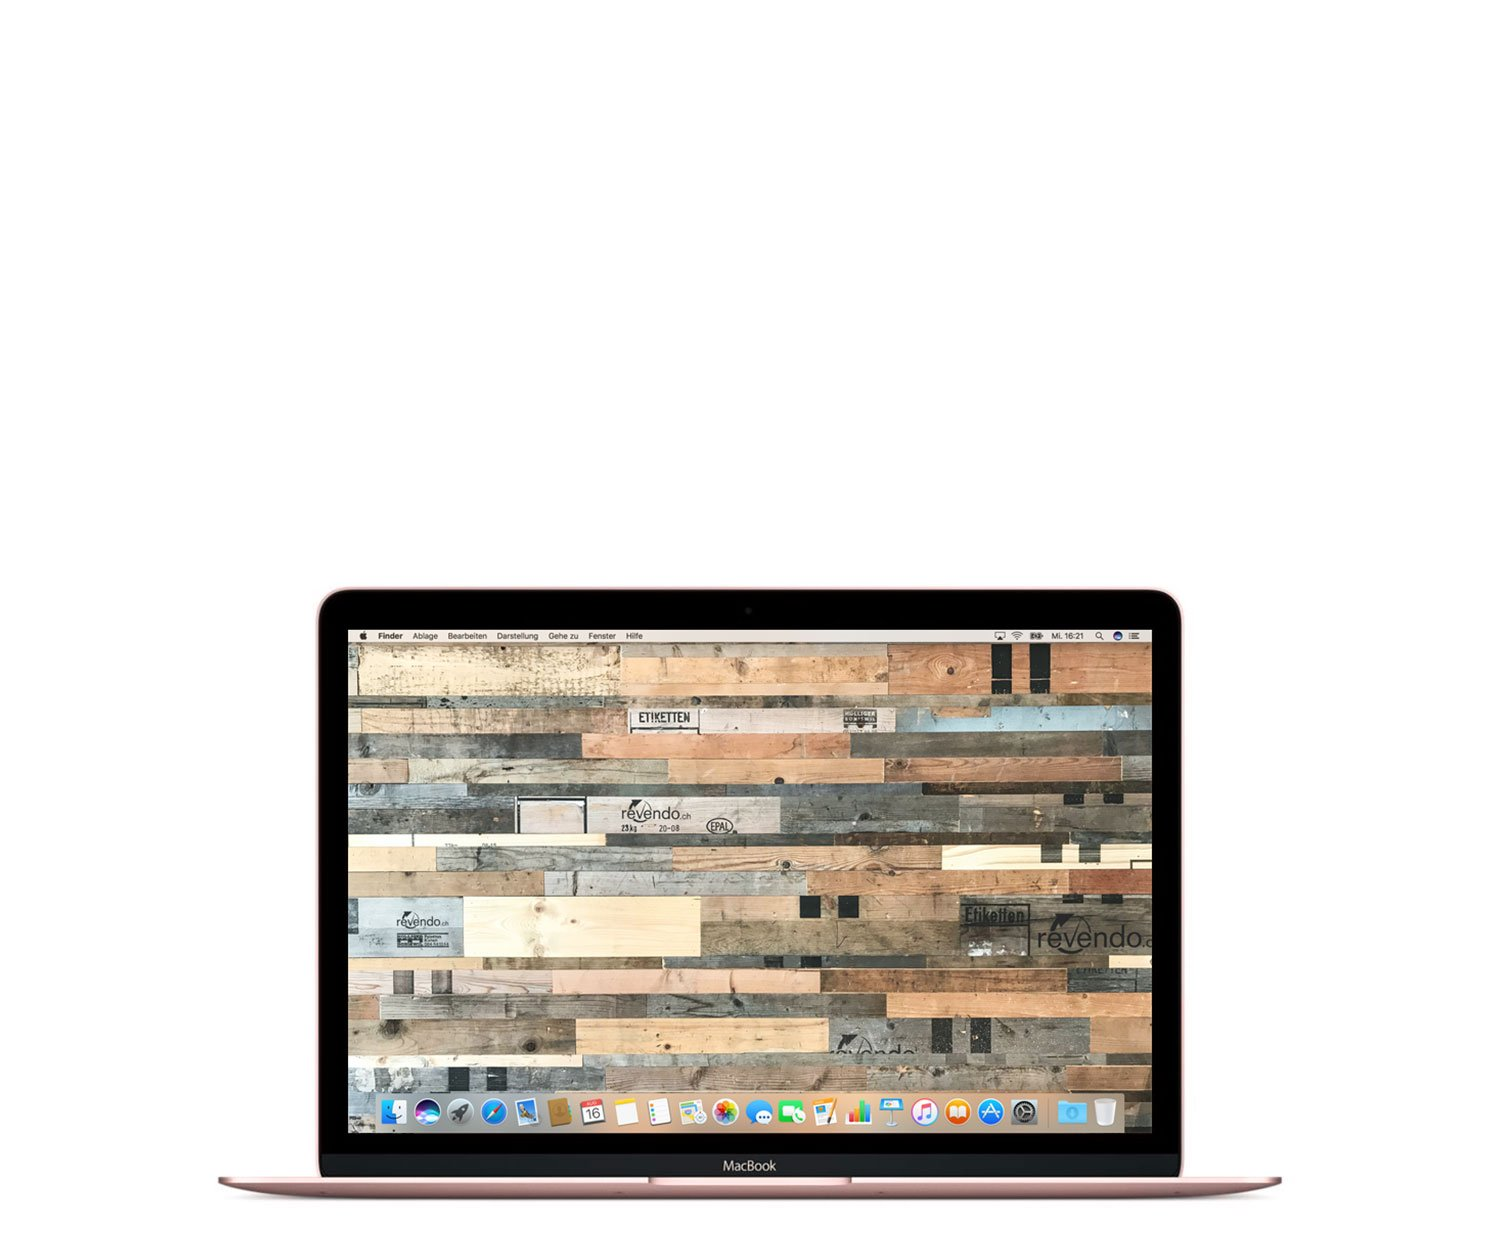 macbook 12 1 2 ghz core m3 256 gb ssd. Black Bedroom Furniture Sets. Home Design Ideas